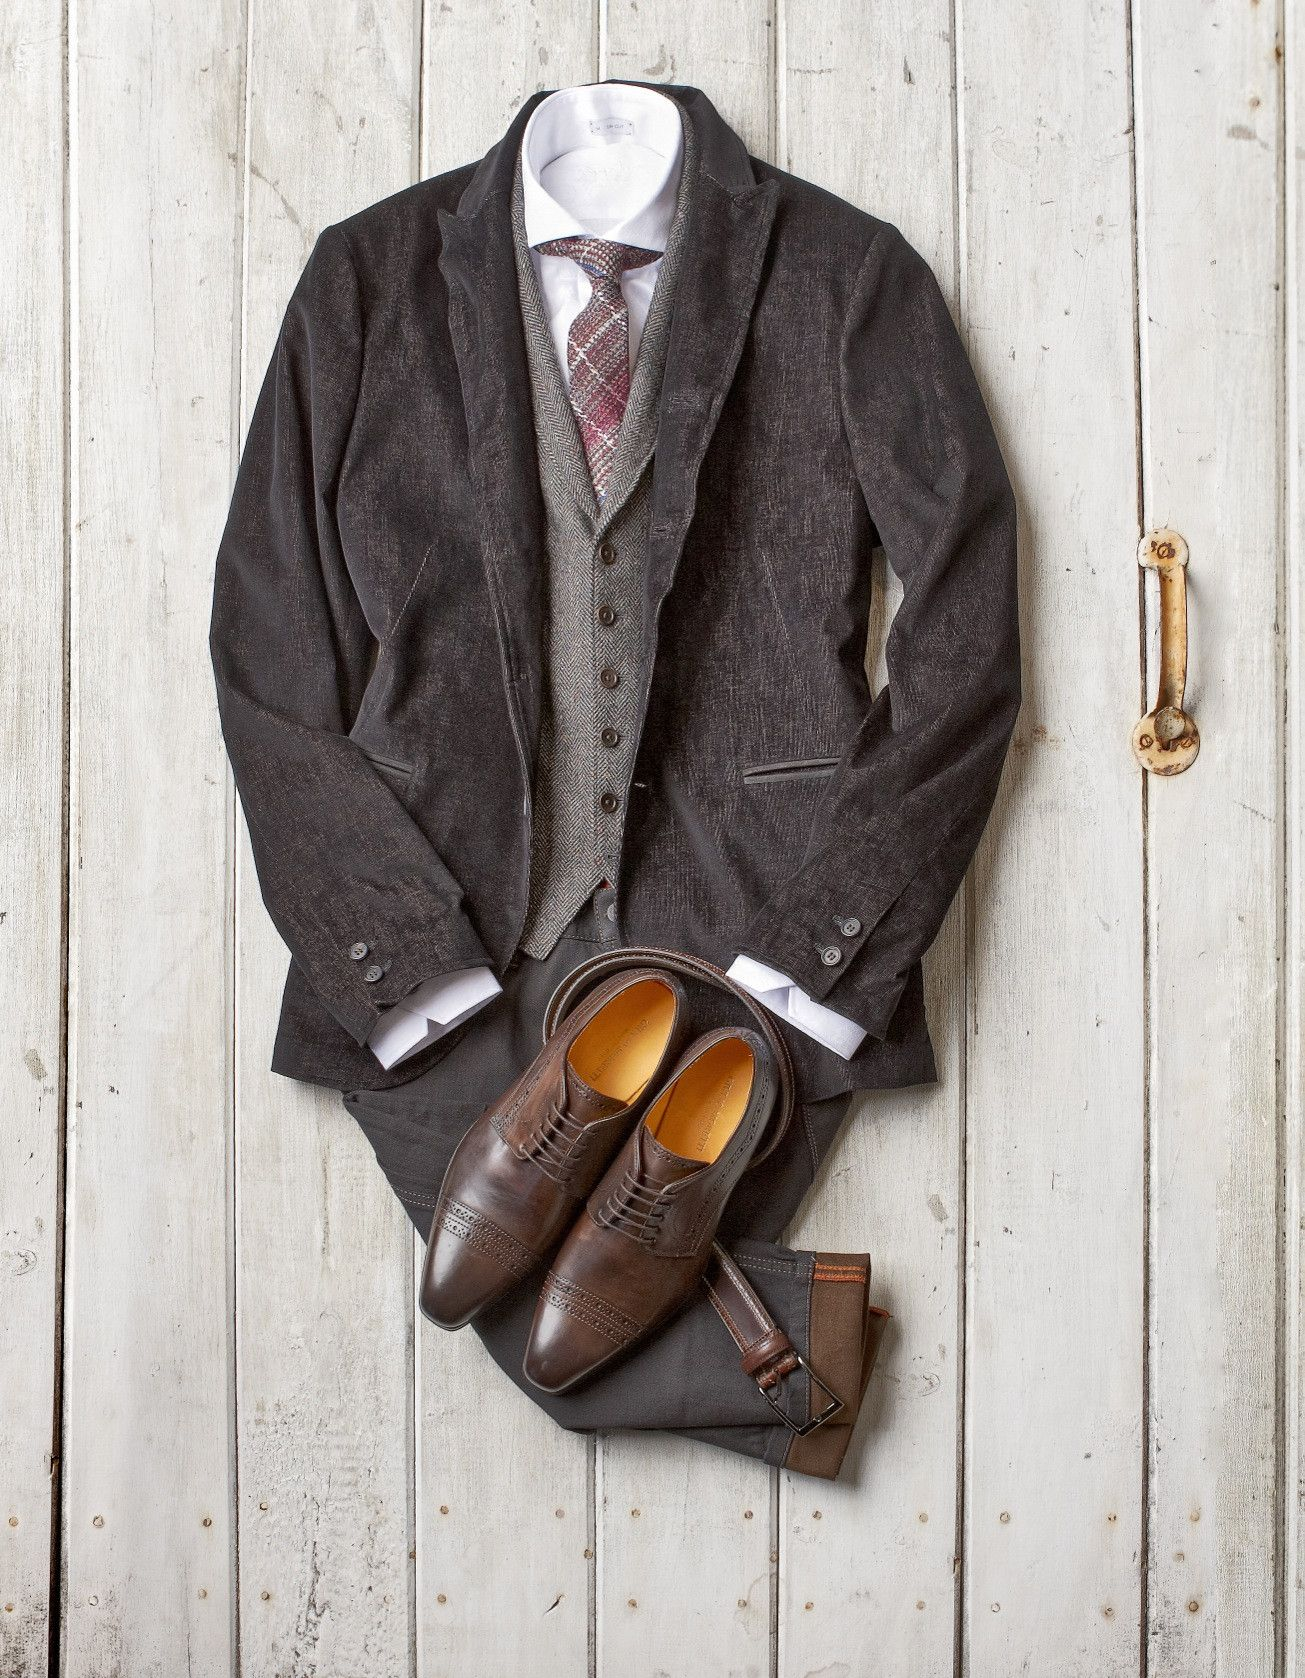 Pin By Jesse Coyner On Casual Mens Winter Fashion Mens Outfits Mens Attire